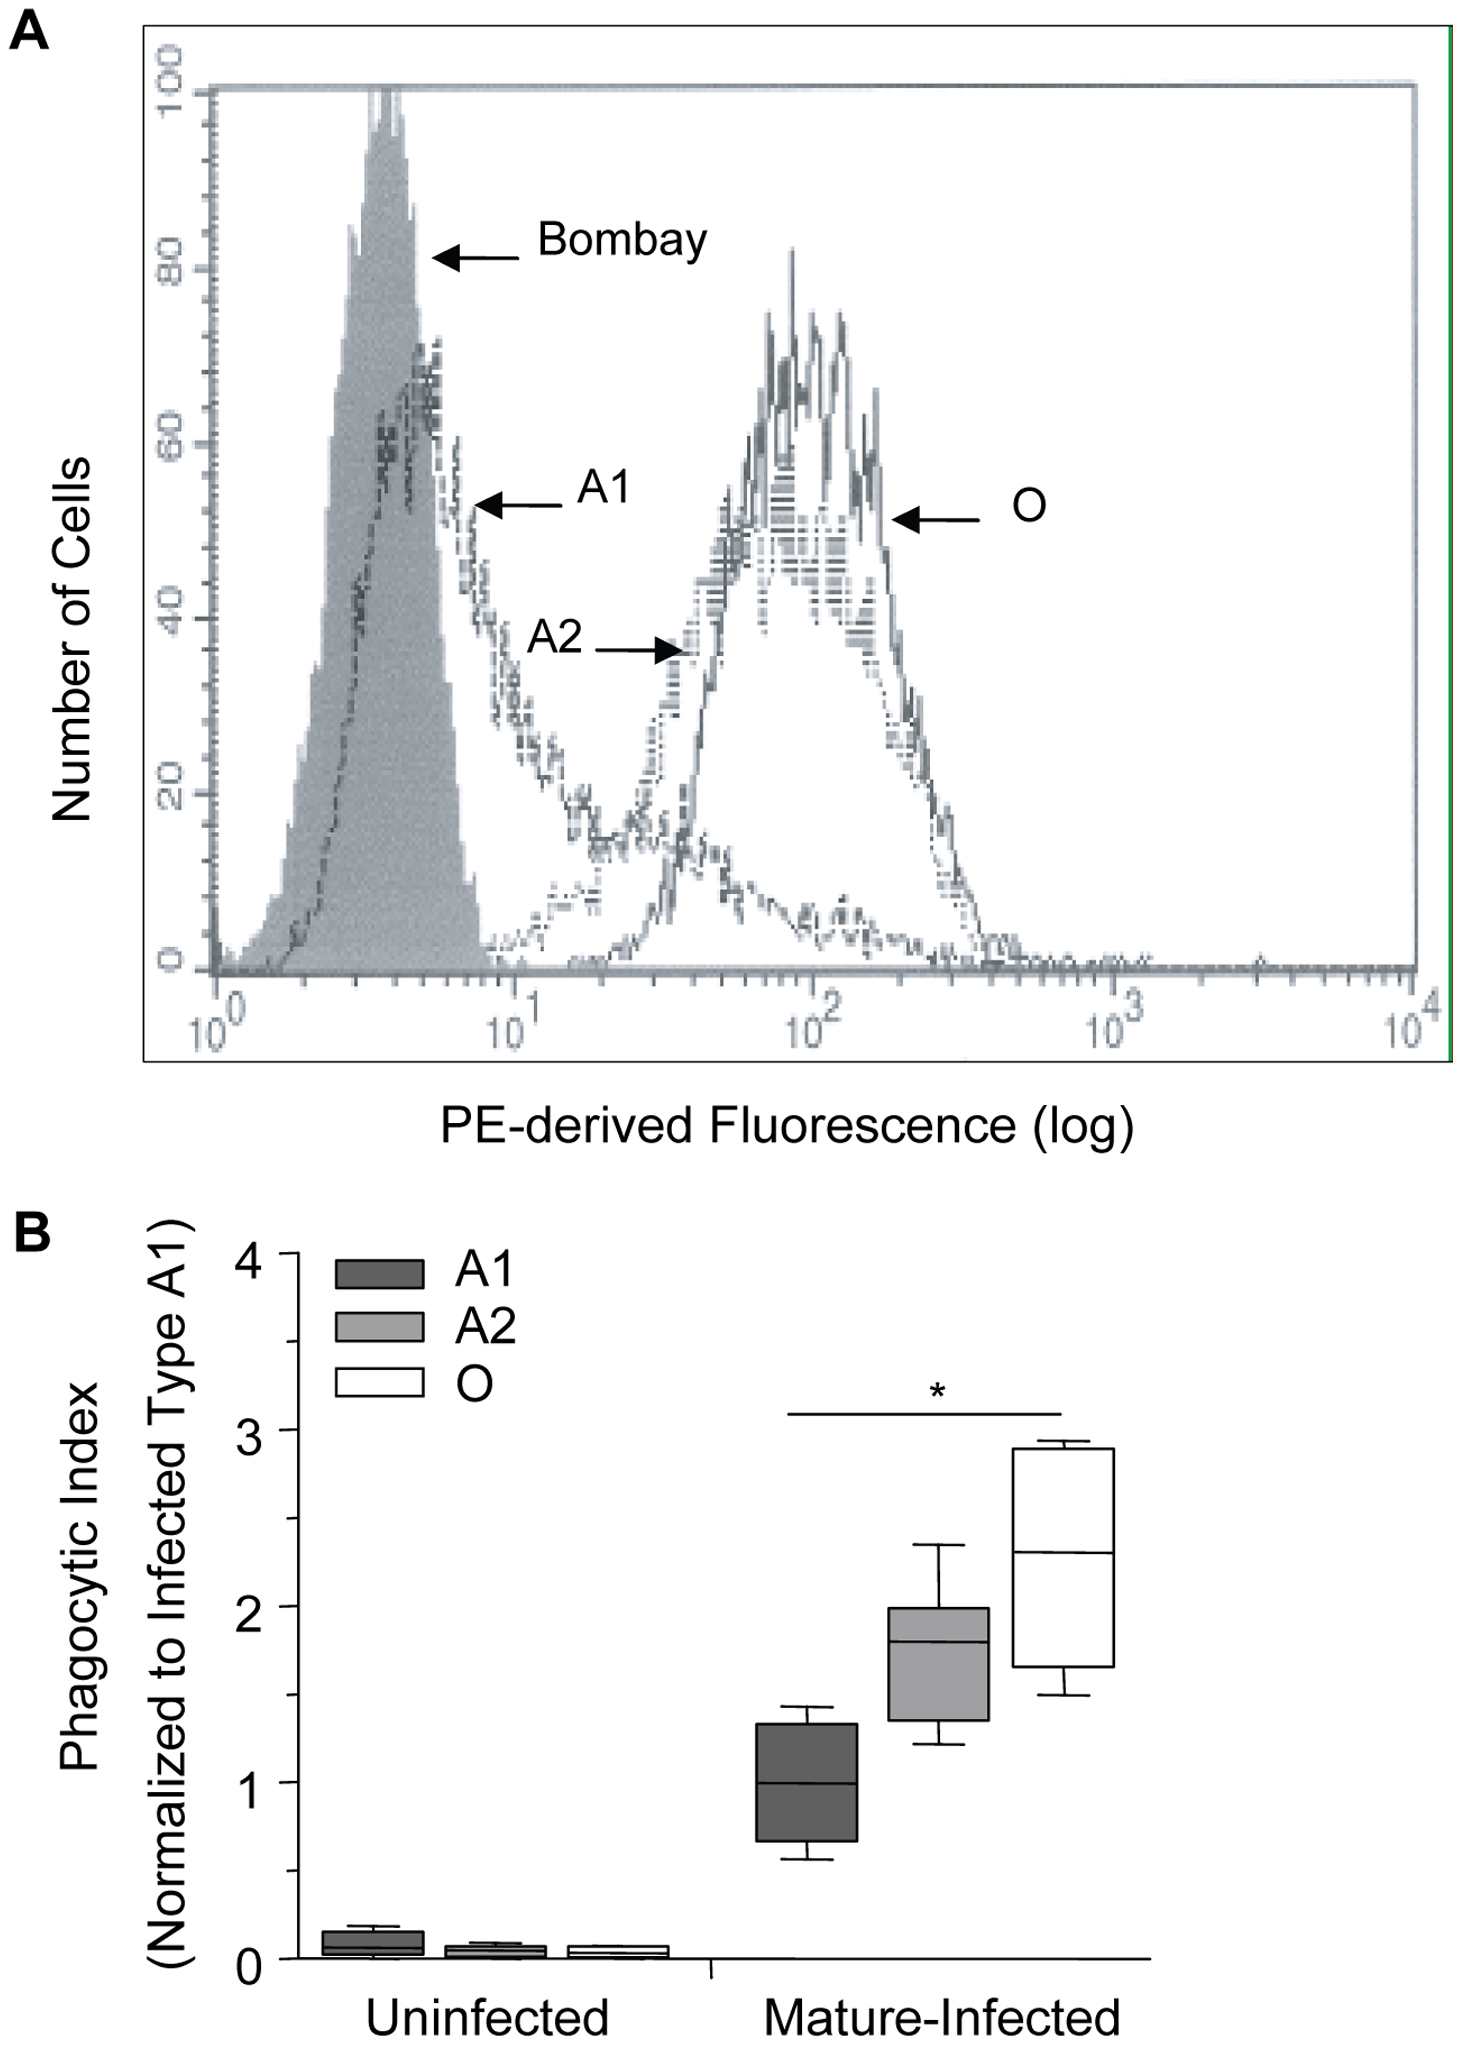 Increasing phagocytosis of erythrocytes correlates with decreasing A antigen.